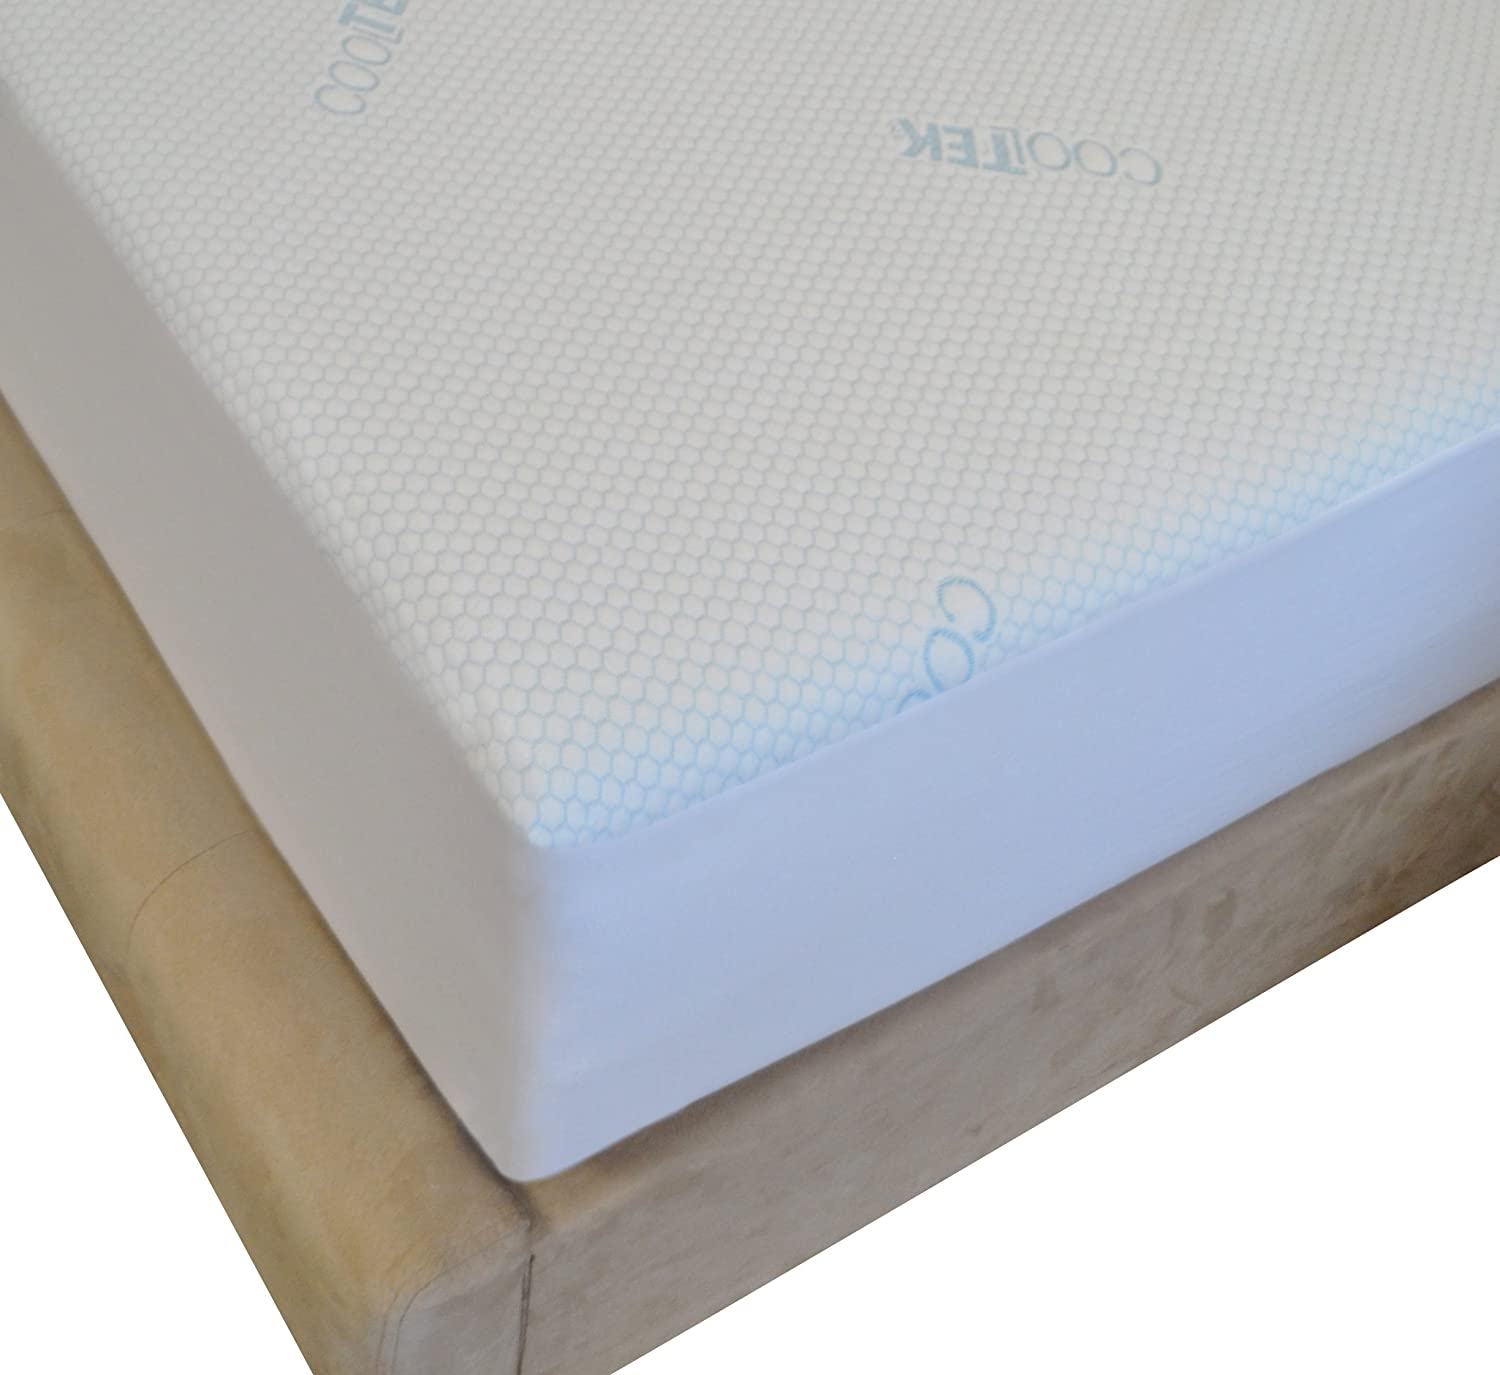 Thomasville Purify Waterproof Mattress Predector with Cool-Tek, Full